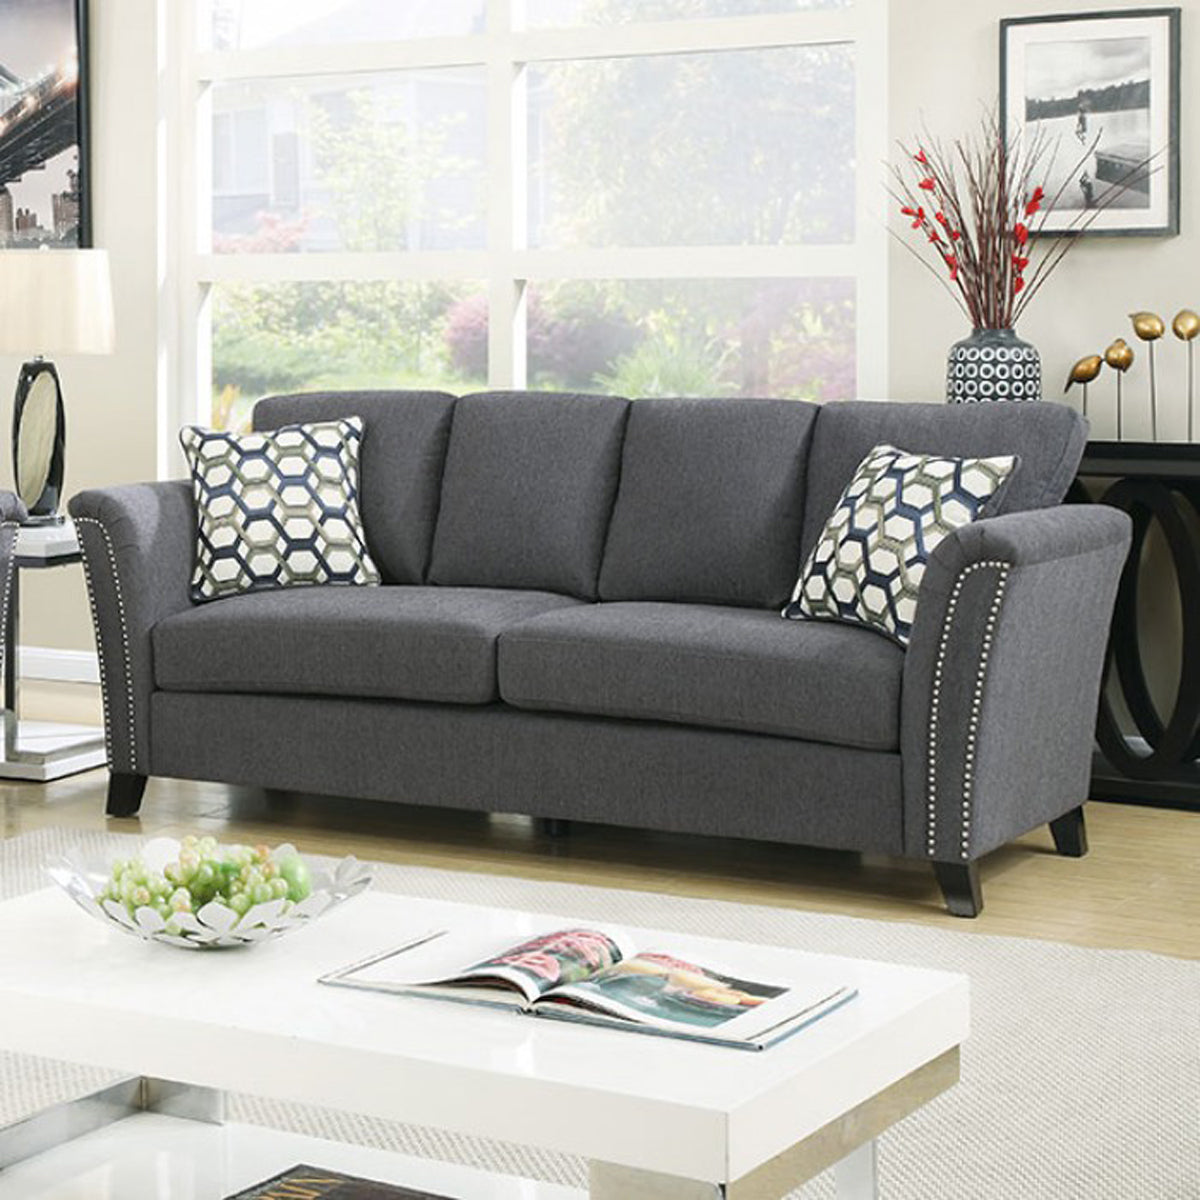 Campbell CM6095GY-SF Contemporary Style Gray Fabric Sofa Couch